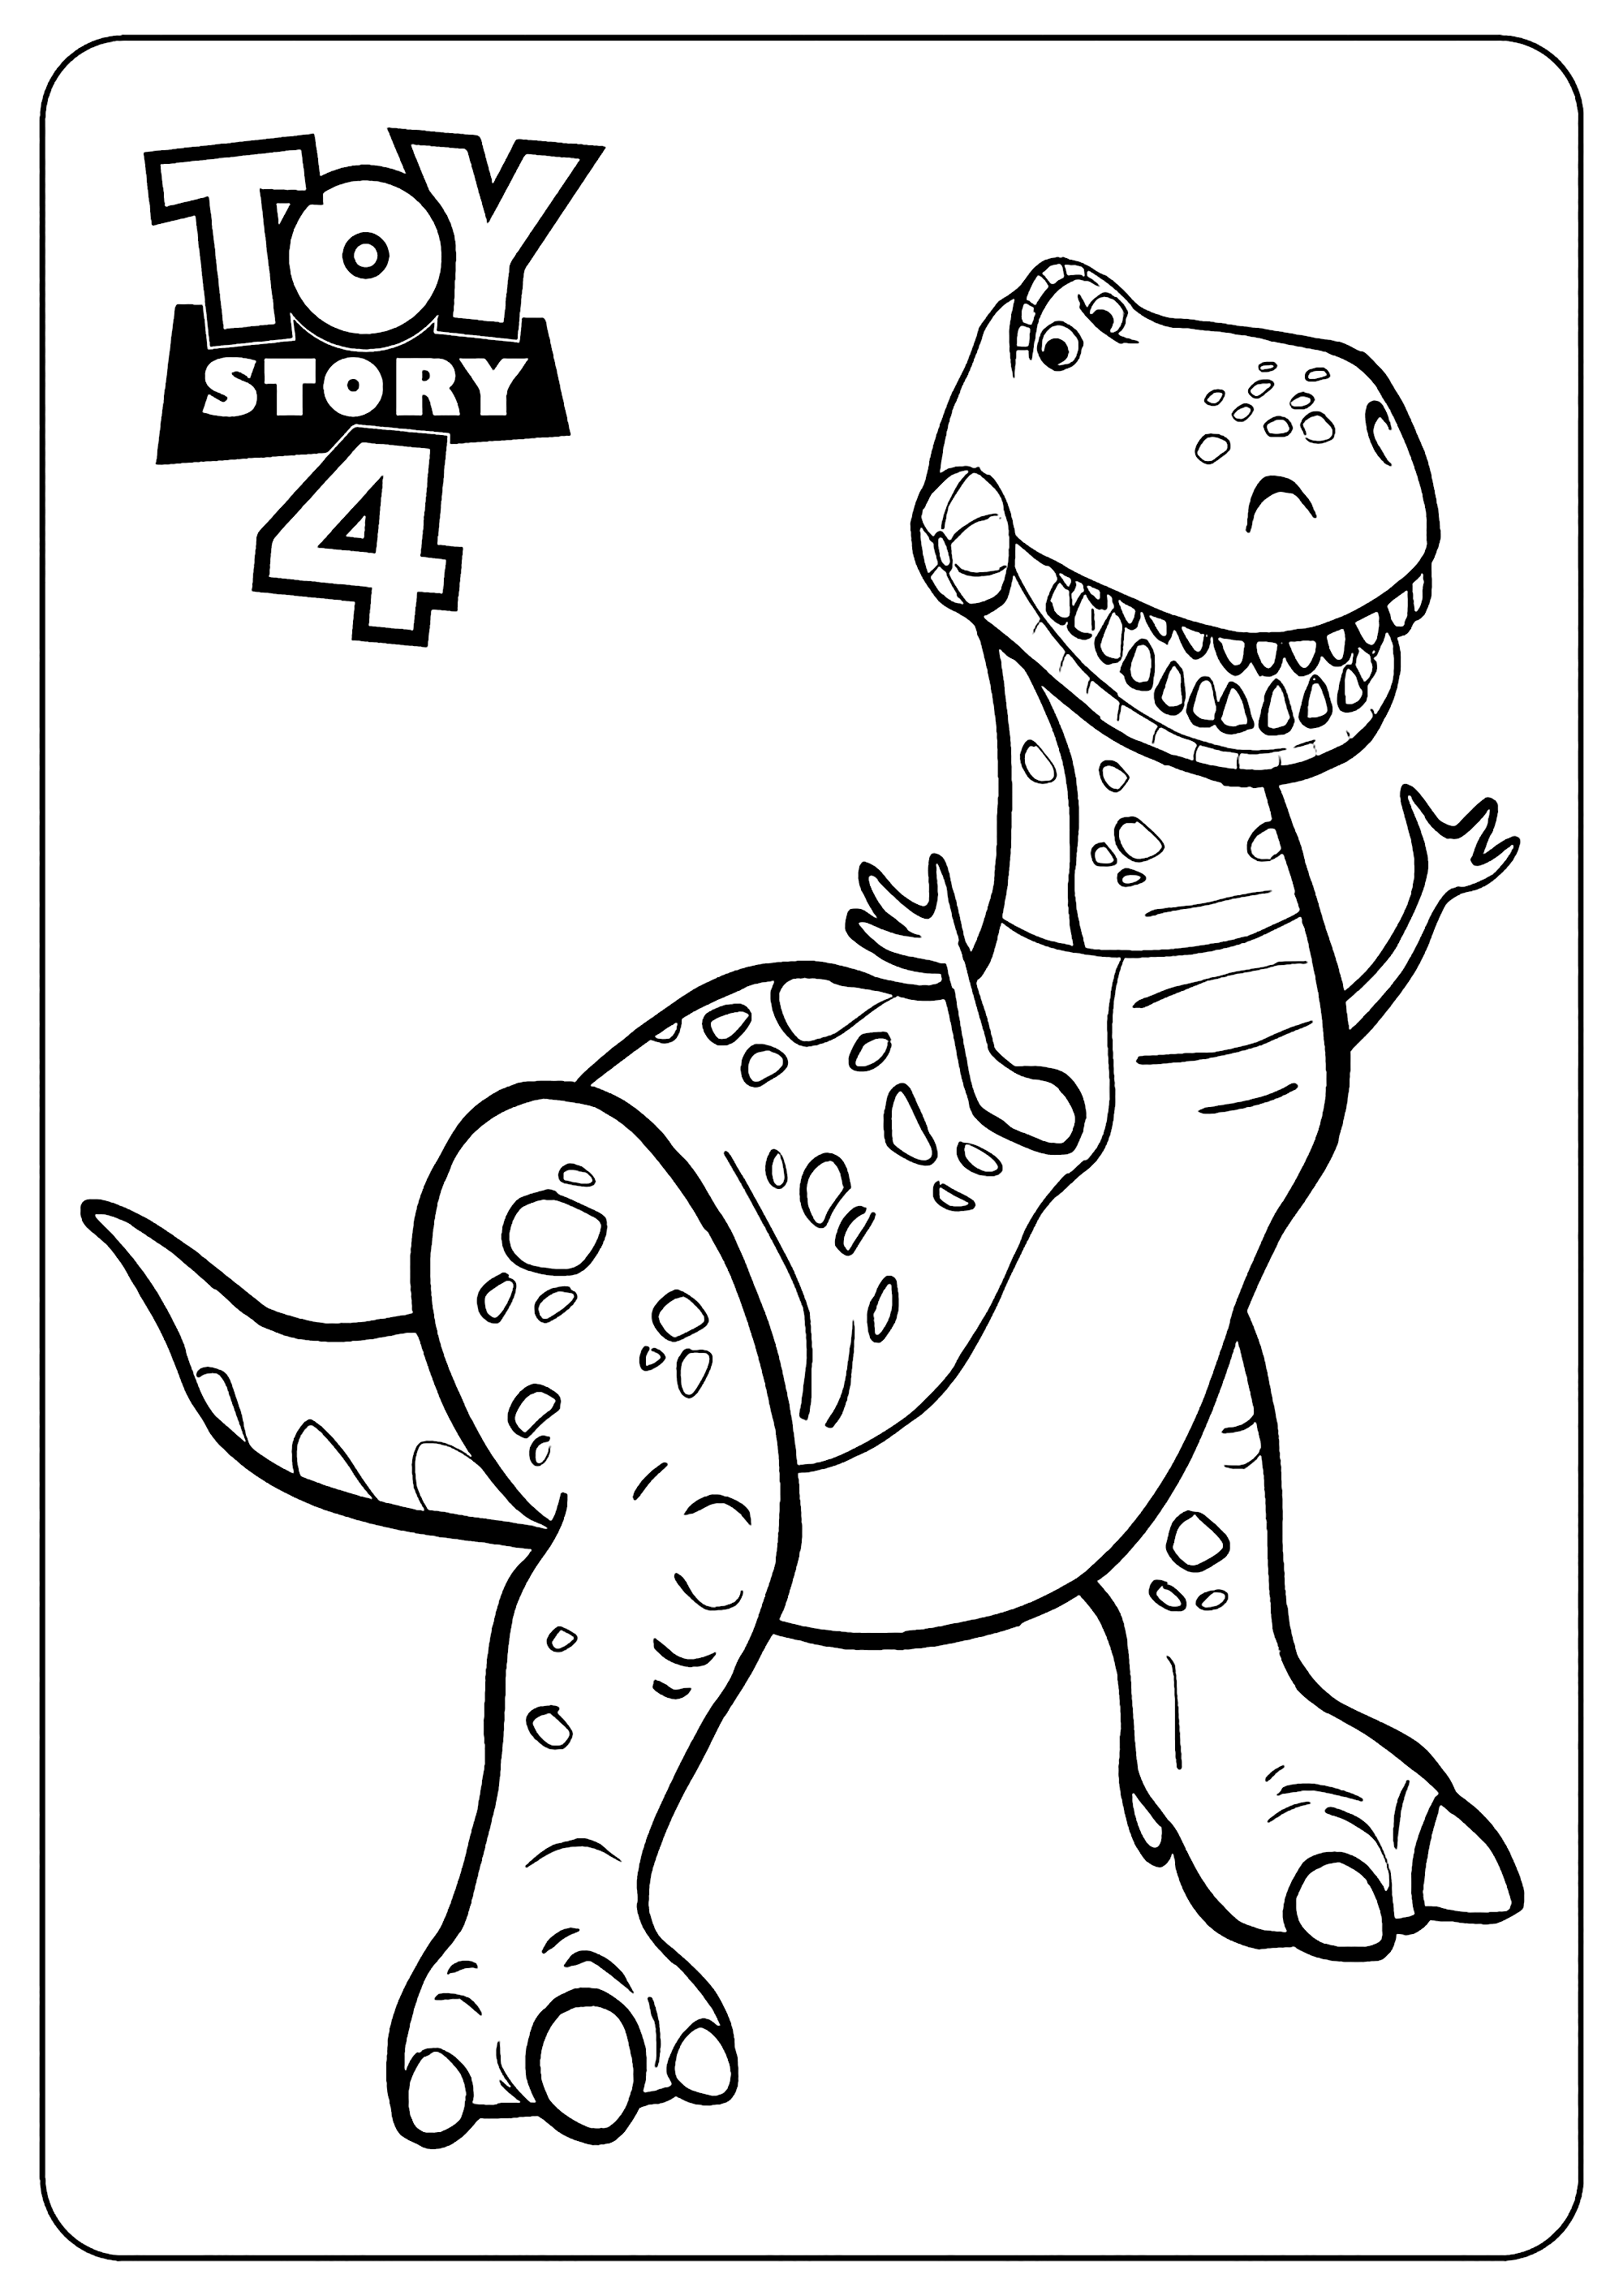 toy story 4 printable coloring pages toy story 4 coloring pages getcoloringpagescom coloring pages printable 4 toy story